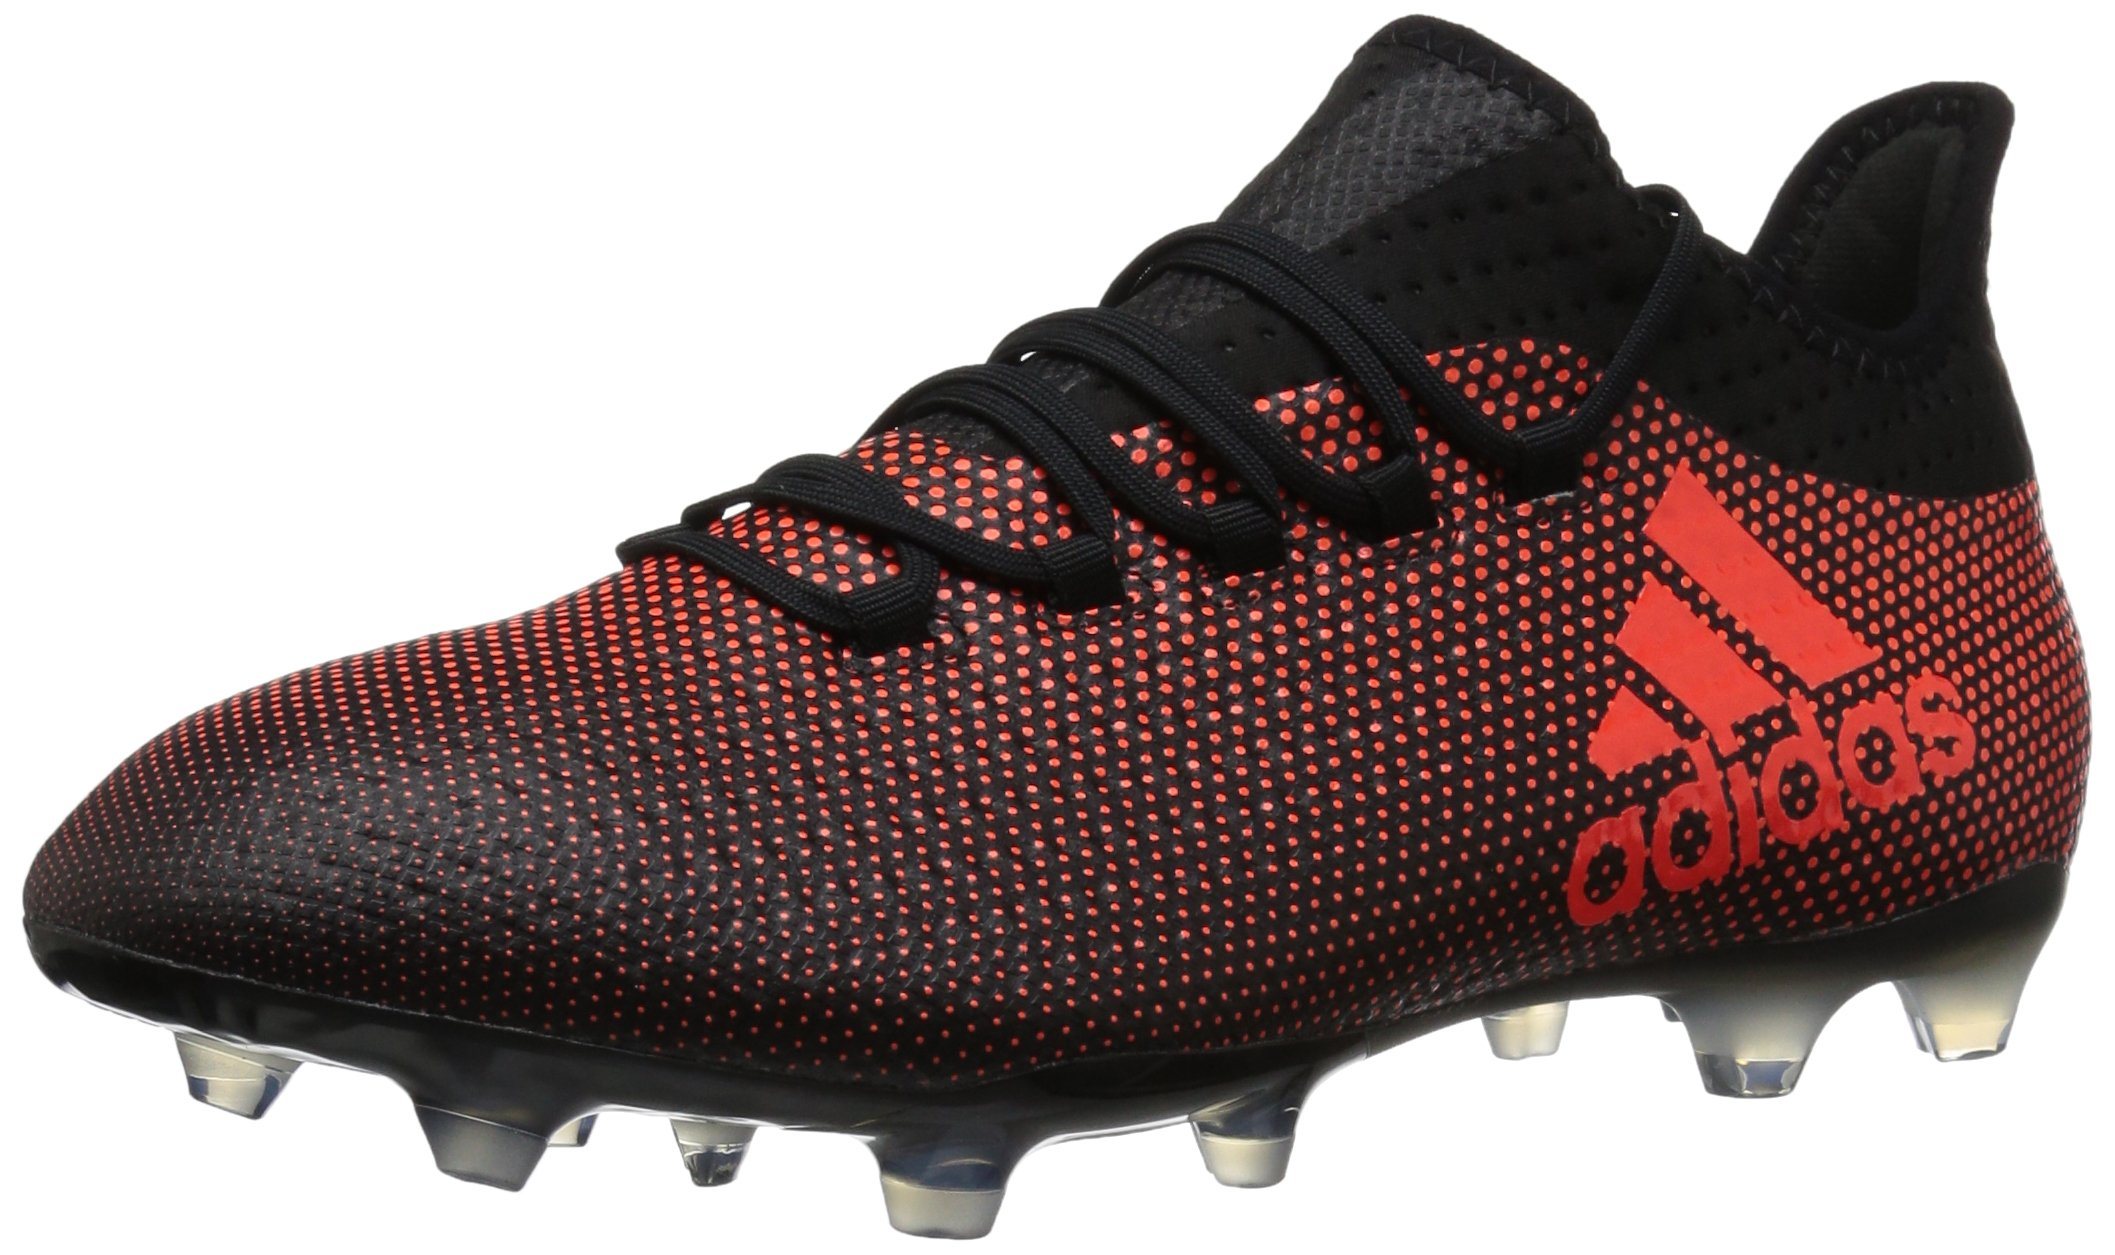 adidas Men's X 17.2 FG Soccer Shoe, Black/Solar Red/Solar Orange, 10.5 M US by adidas